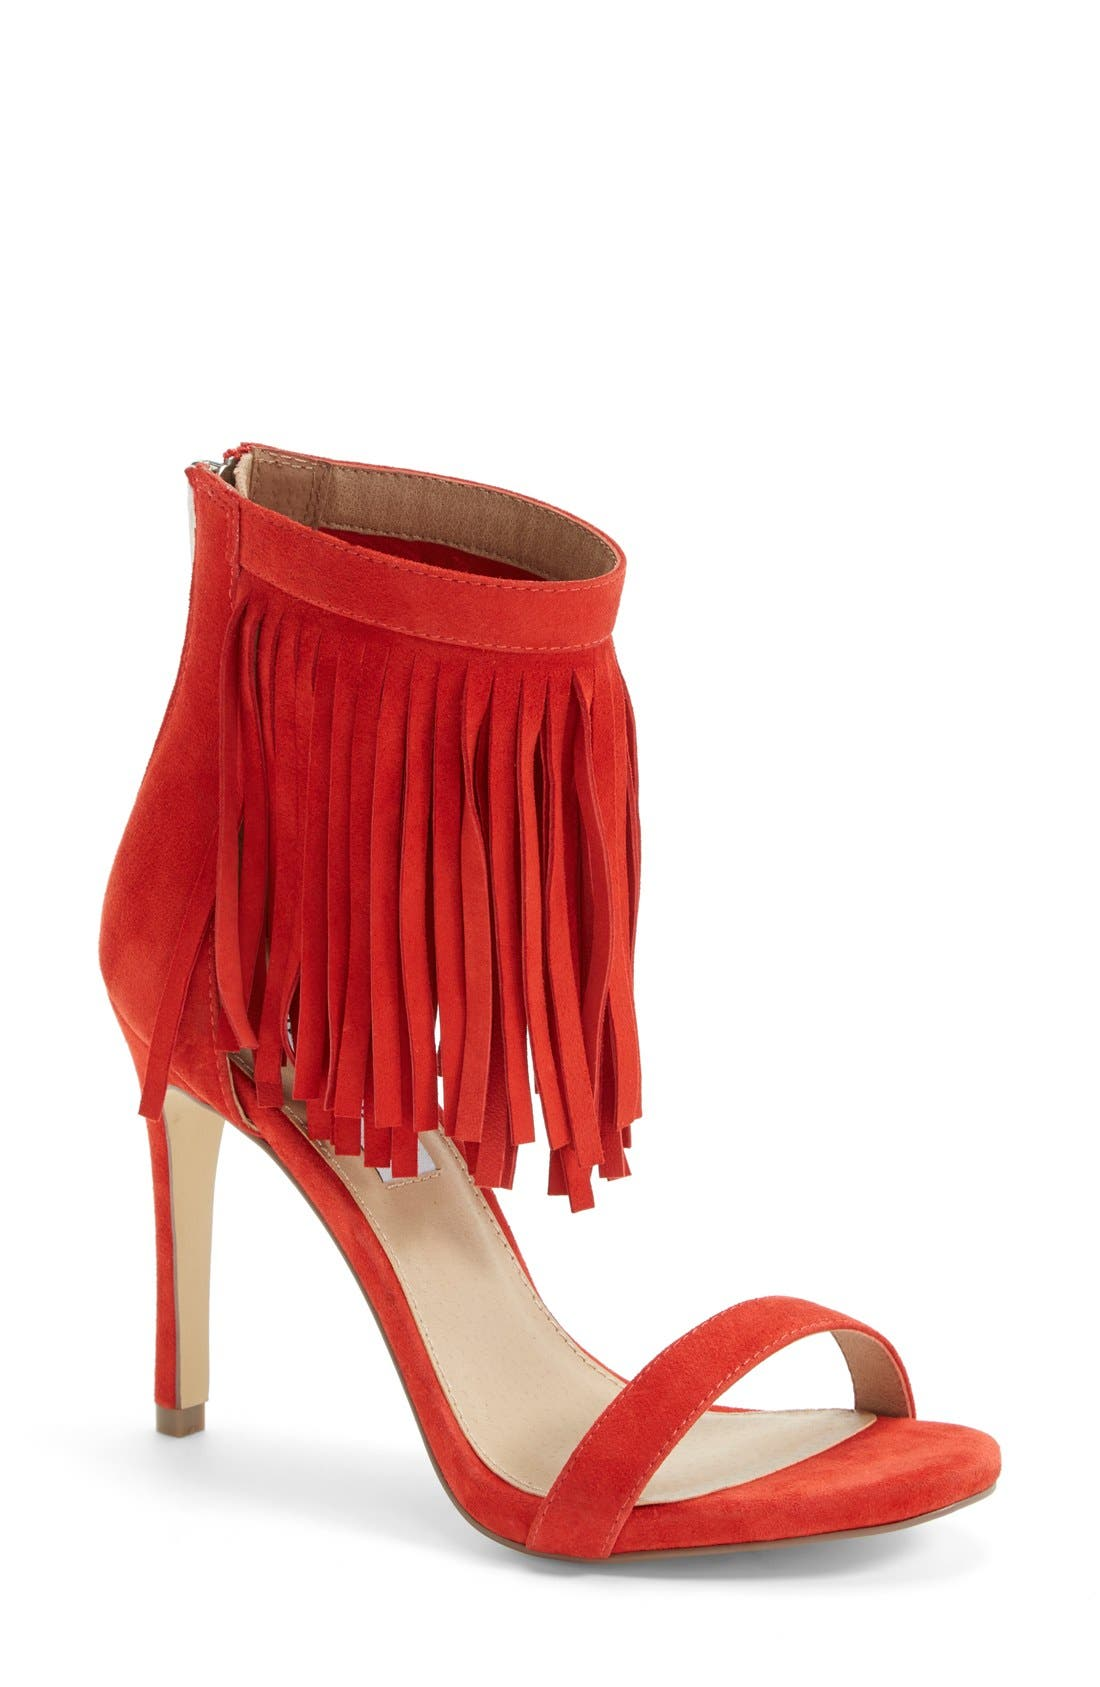 'Staarz' Ankle Fringe Sandal,                             Main thumbnail 1, color,                             Coral Suede